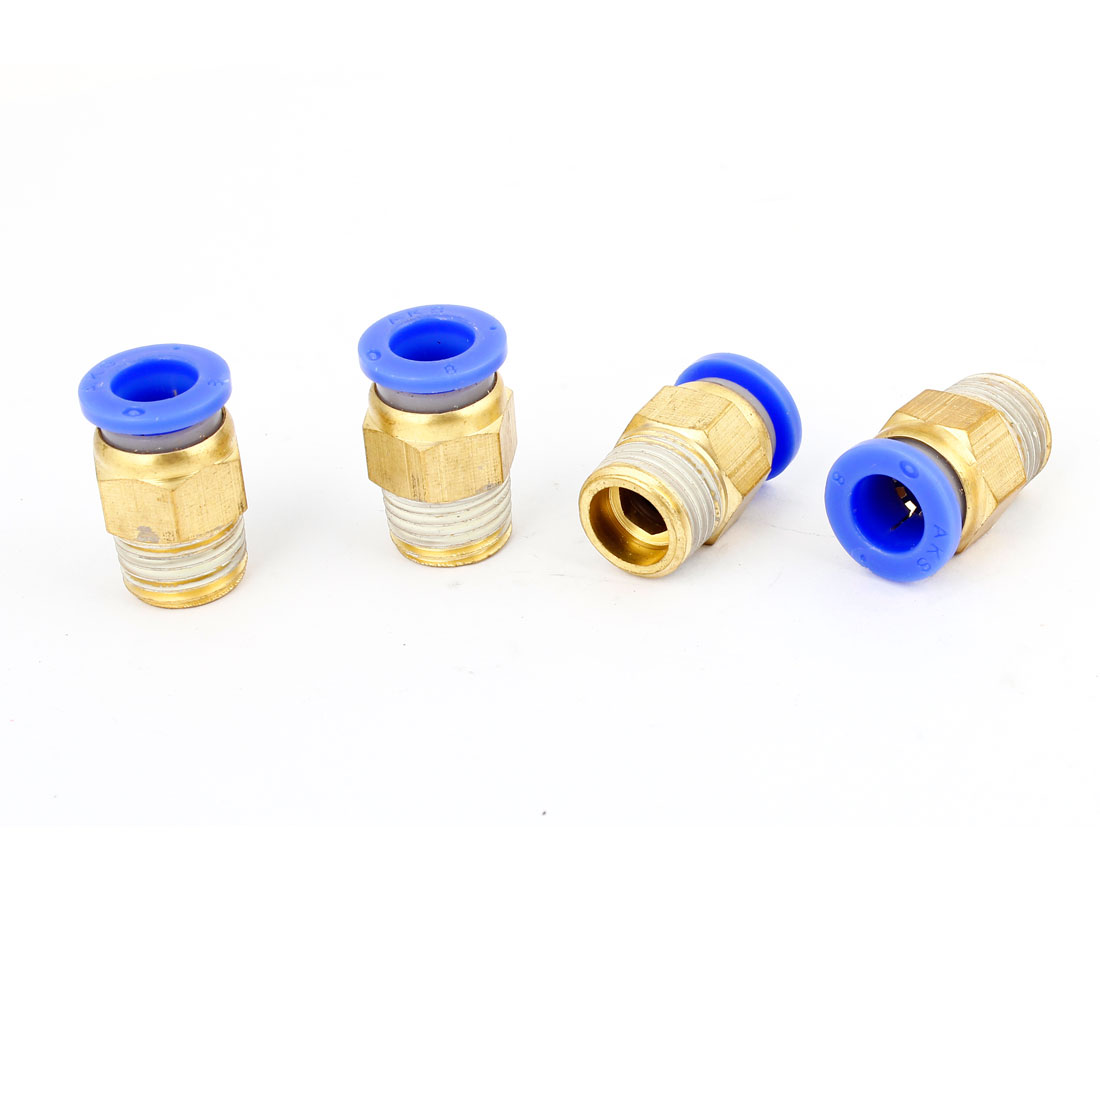 4PCS 1/4 PT Male Threaded OD 8mm Push In Quick Release Coupler Connector Air Compressor Hose Disconnect Adapters Connectors Fittings Brass Tone